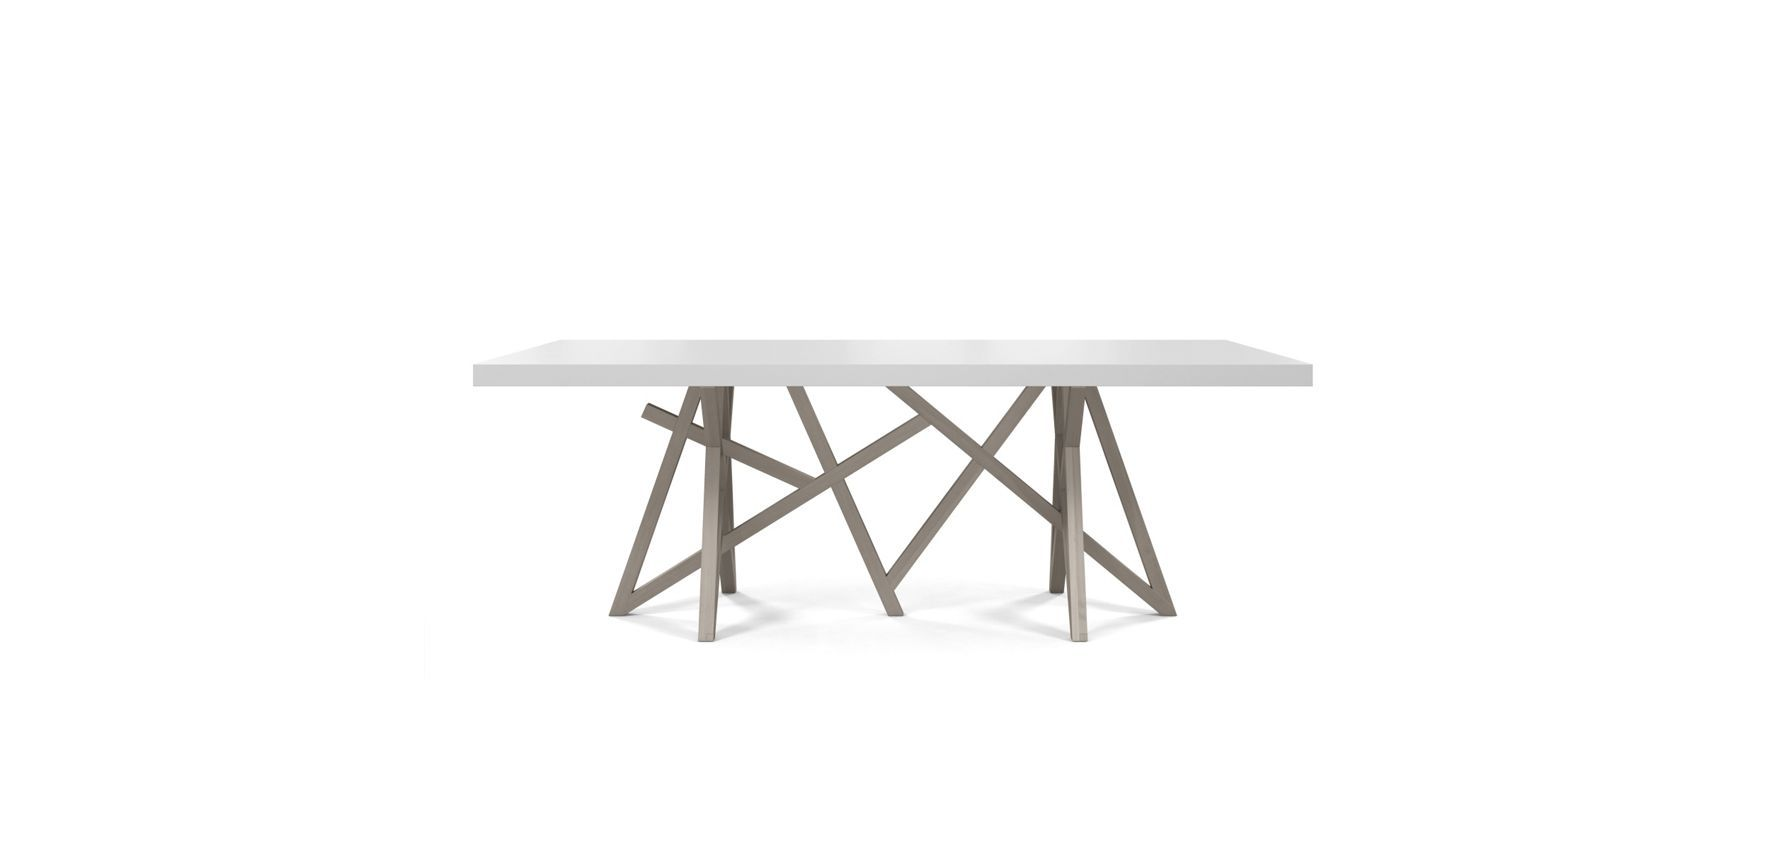 Dining Table With Top In High Resilience Matte Lacquer